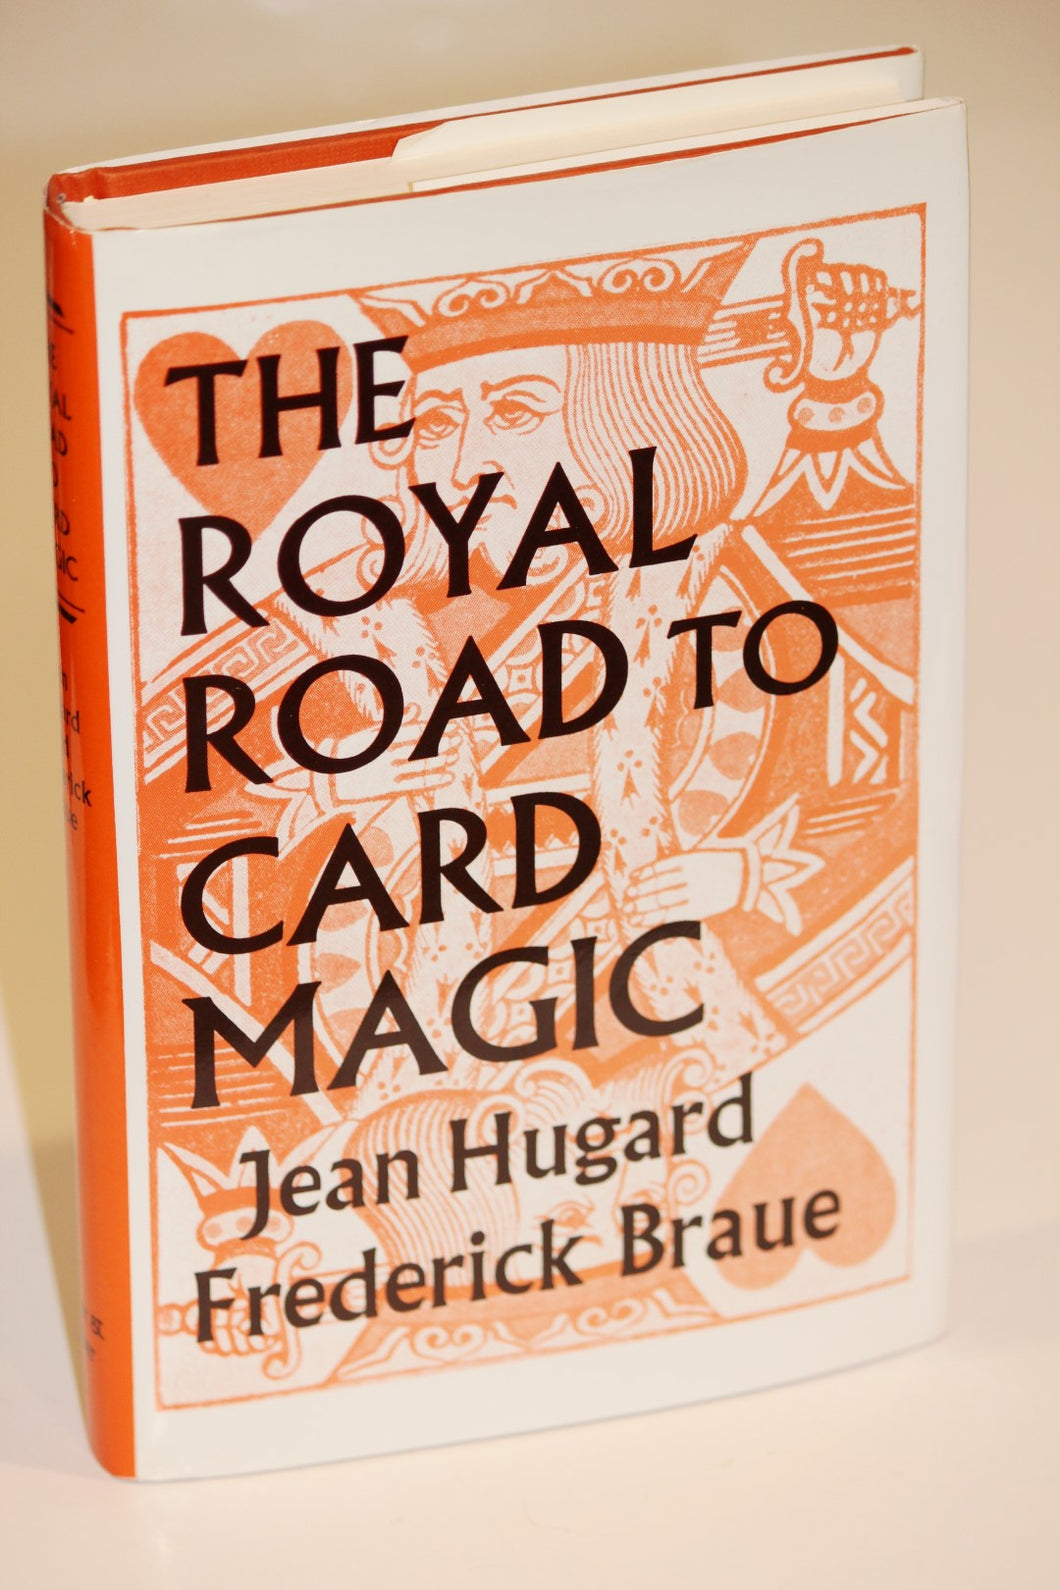 The Royal Road To Card Magic  -  Hugard/Braue